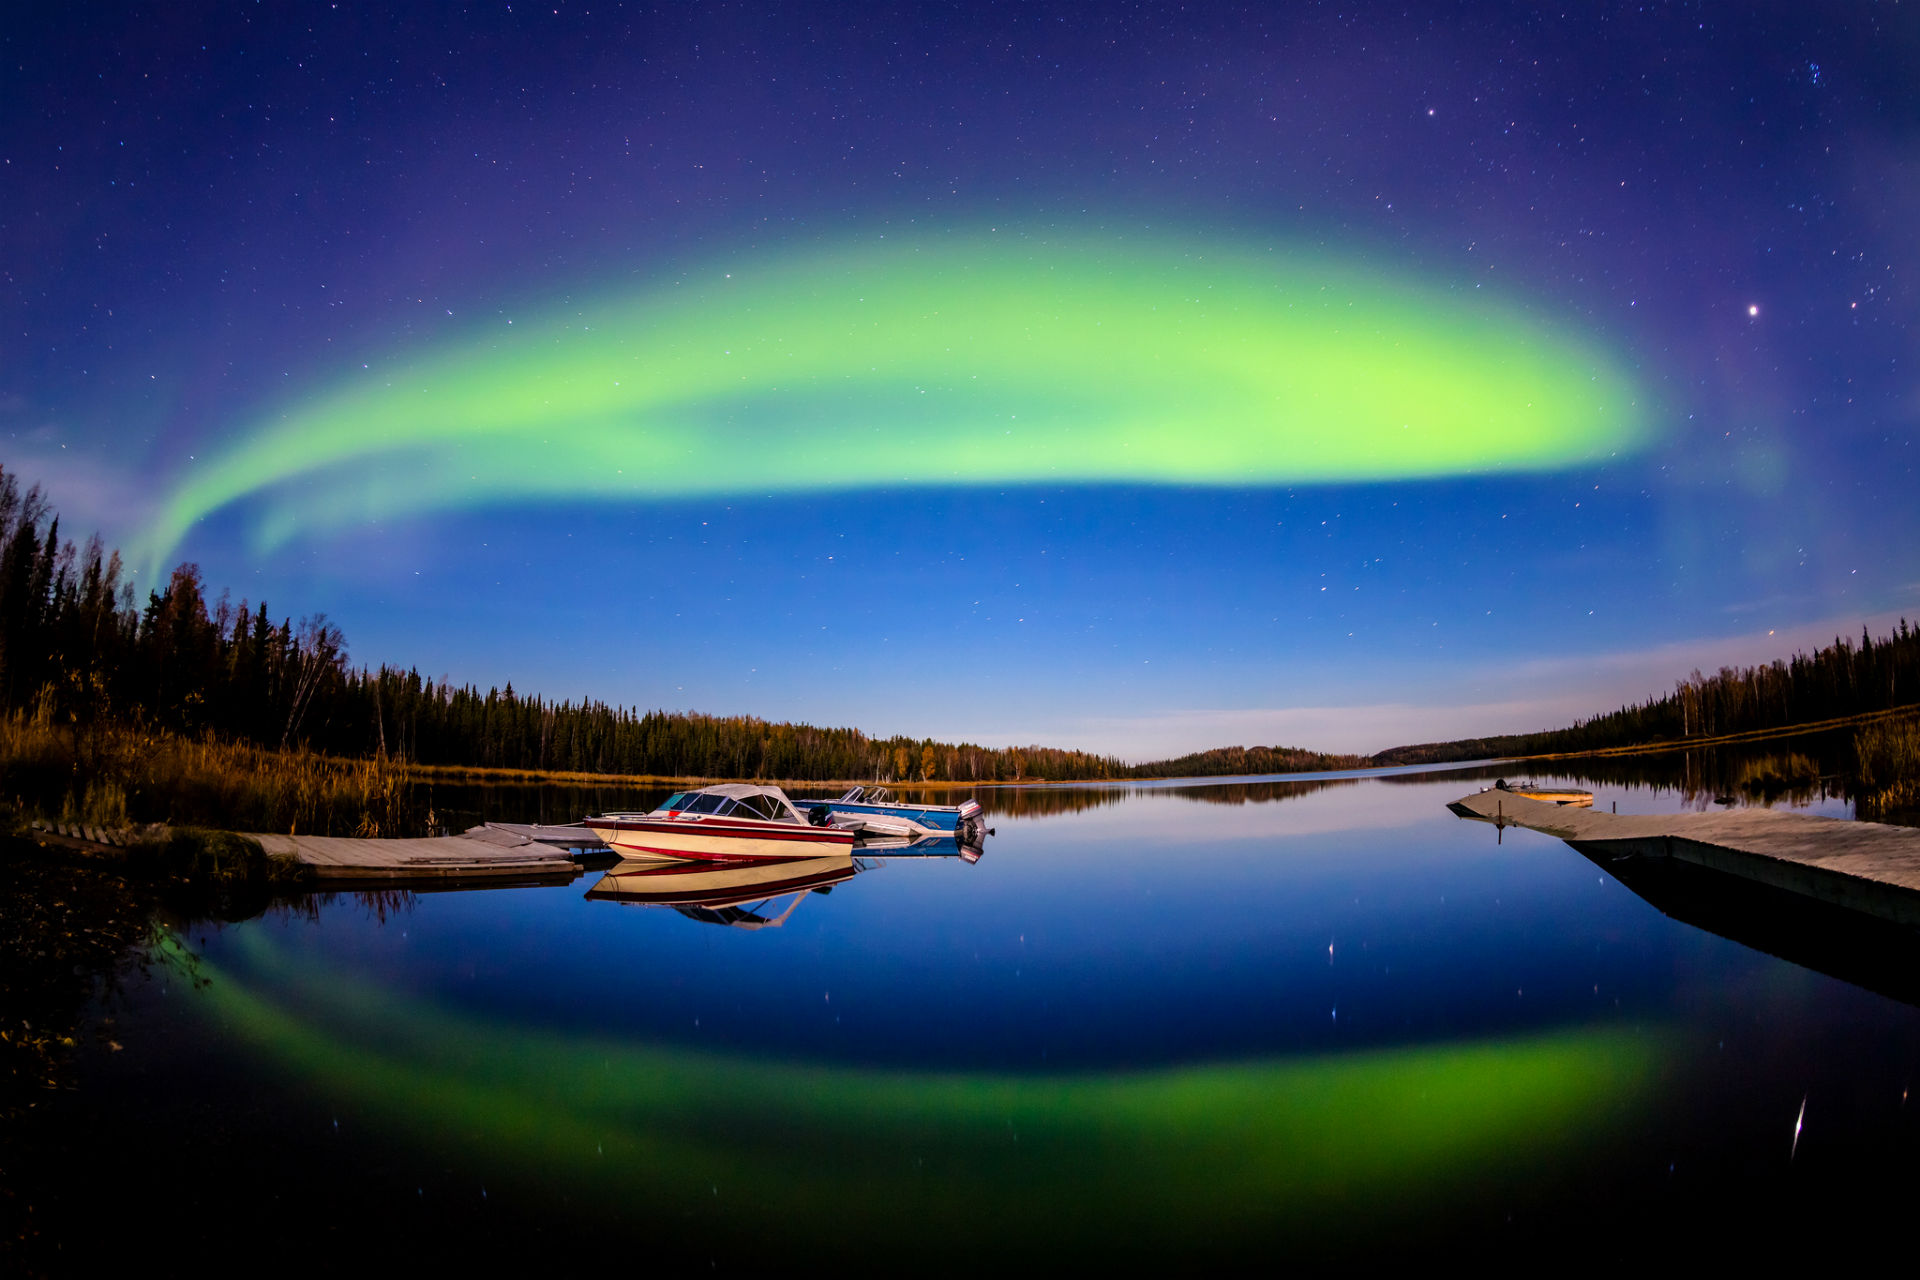 photography reflection aurora borealis boat lake night sky stars wallpaper